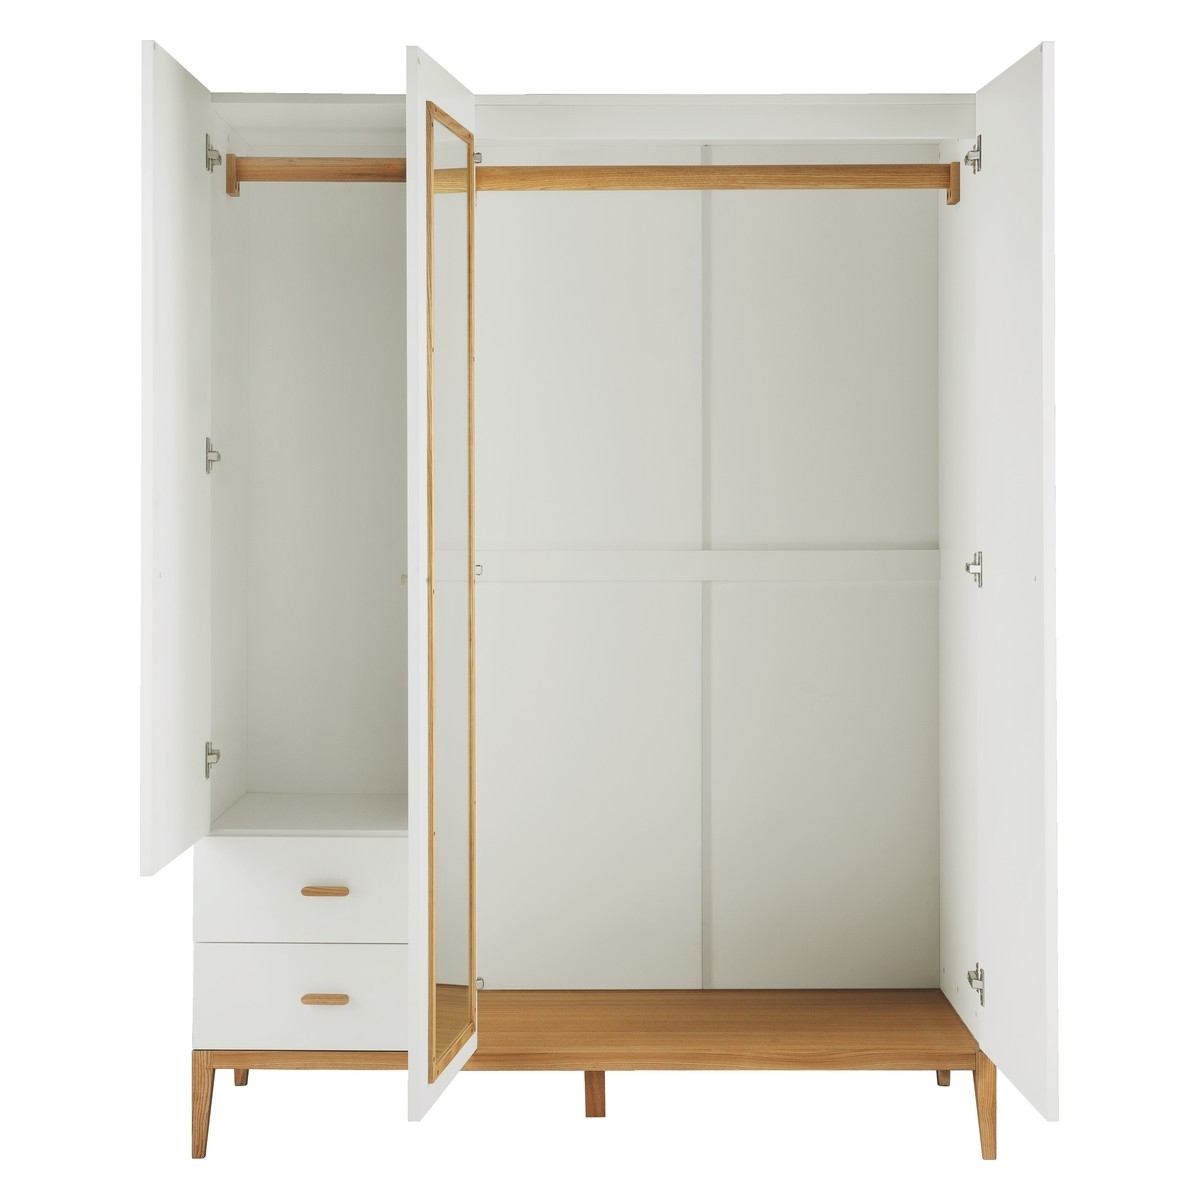 Buy Now At Habitat Uk For White 3 Door Wardrobes With Mirror (View 4 of 15)